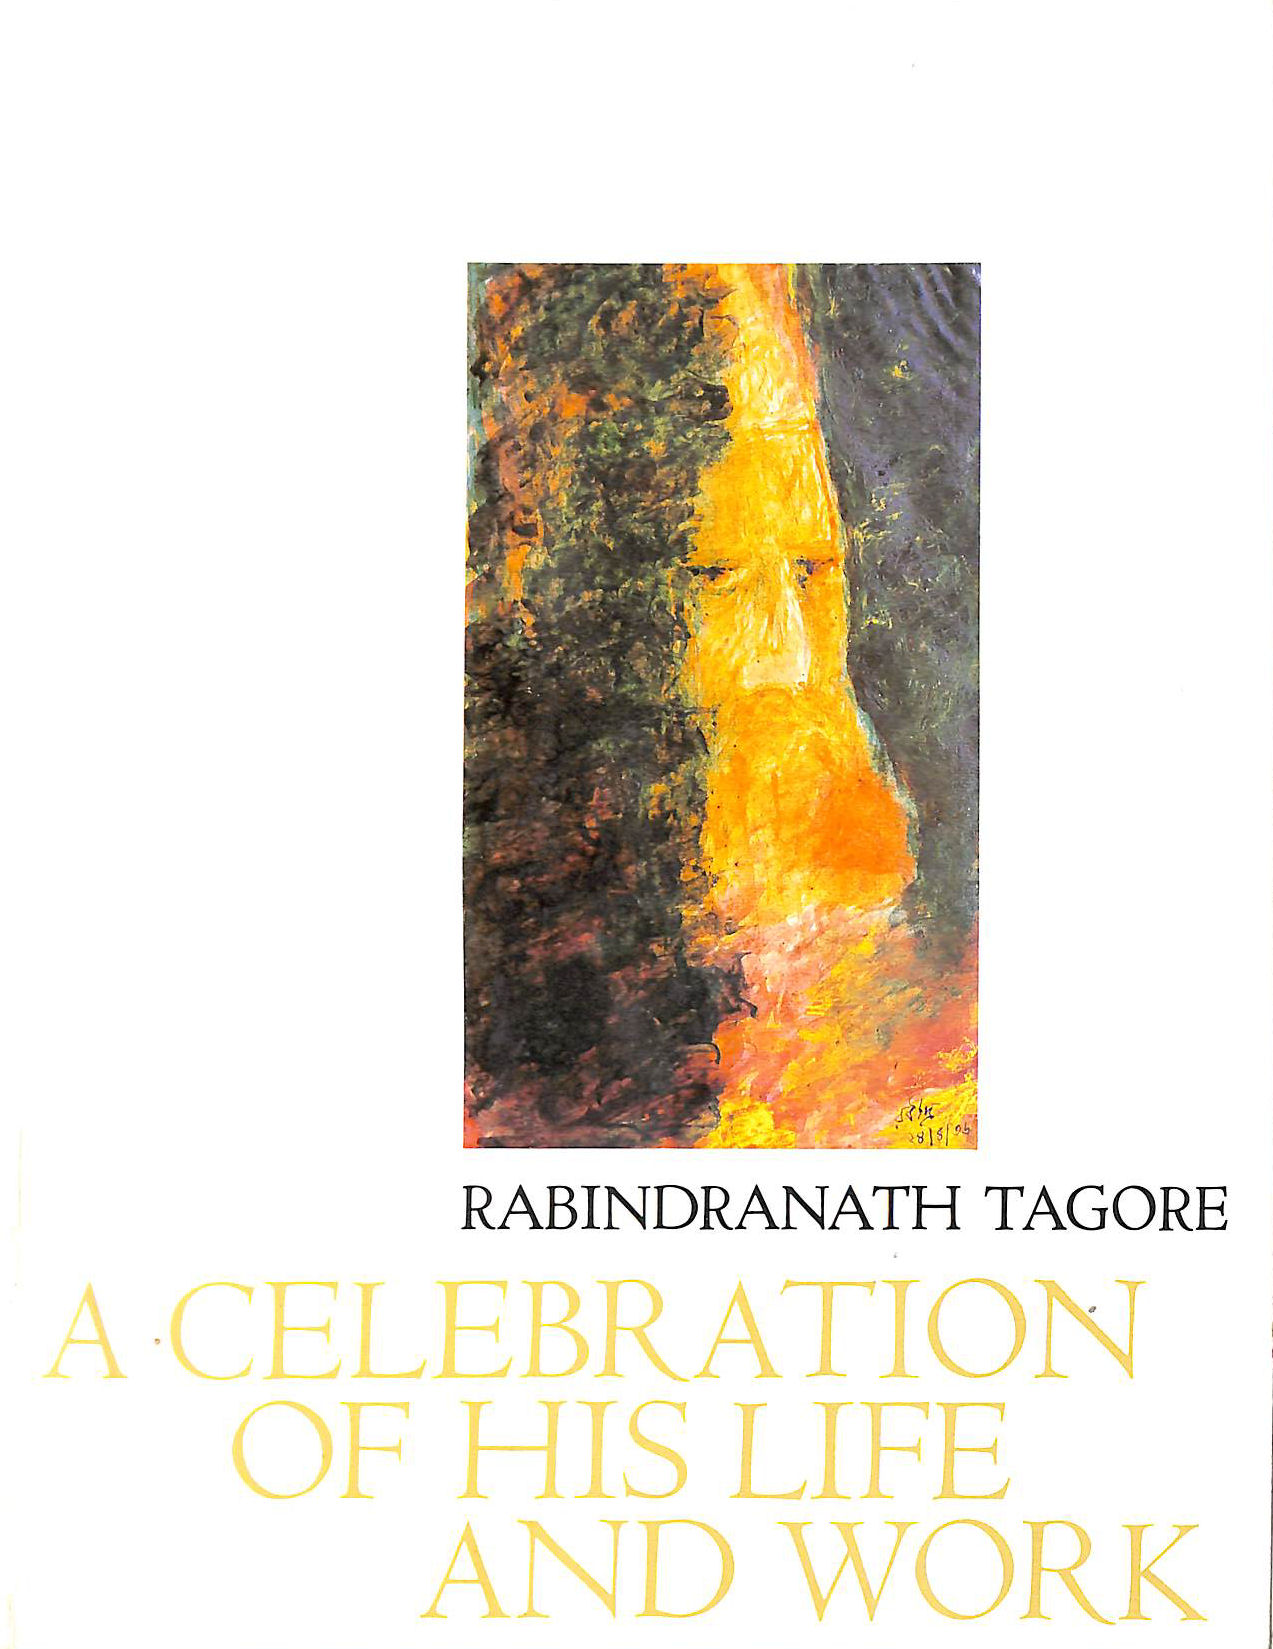 Image for Rabindranath Tagore: A Celebration Of His Life And Work